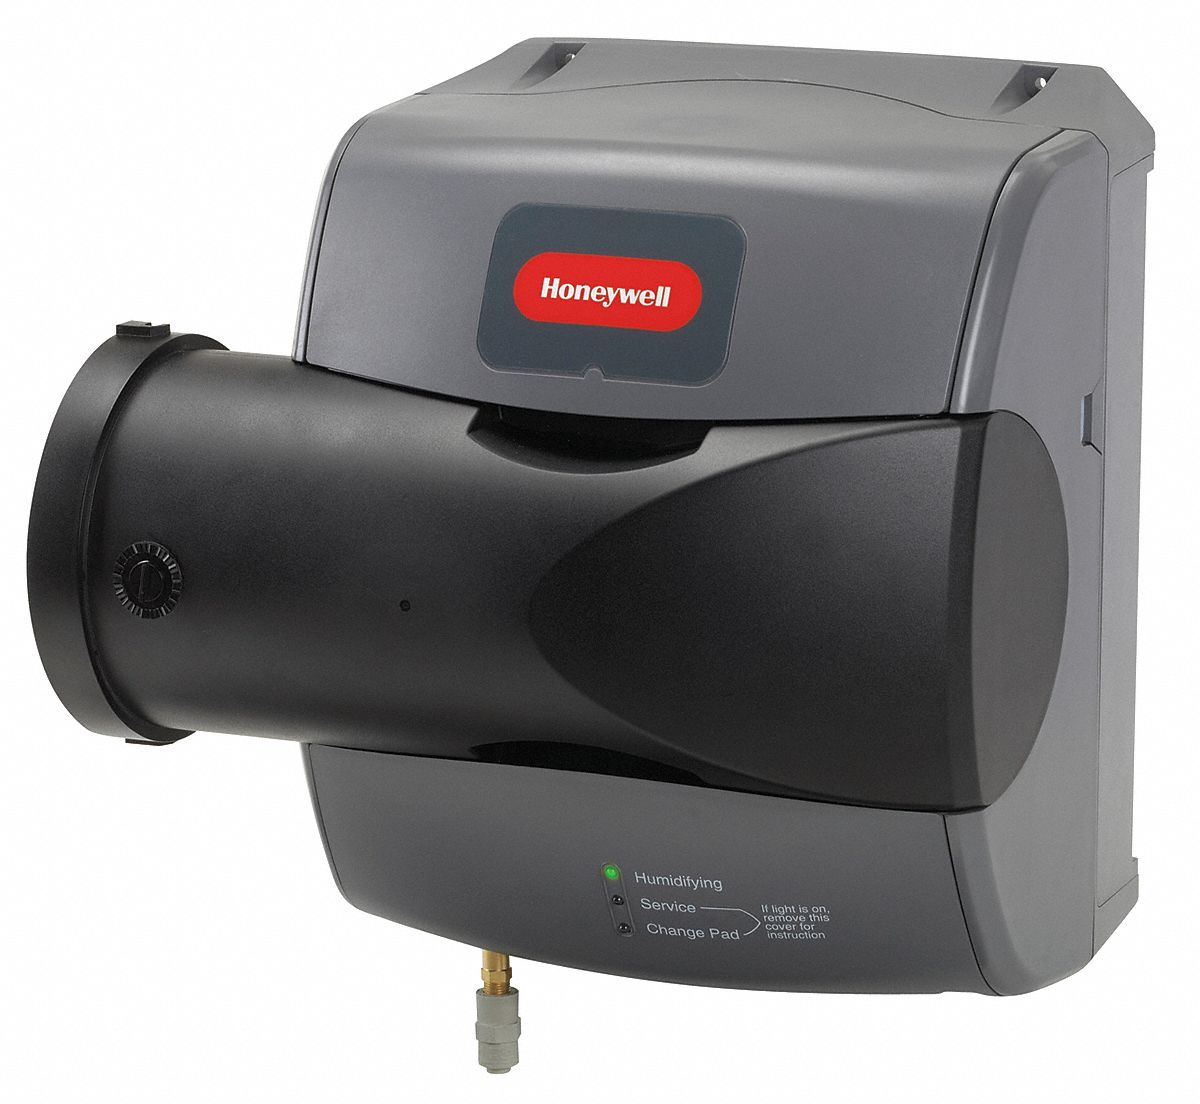 HONEYWELL Furnace Humidifier, Bypass, 12 GPD by Honeywell HE150A1005 at Sears.com